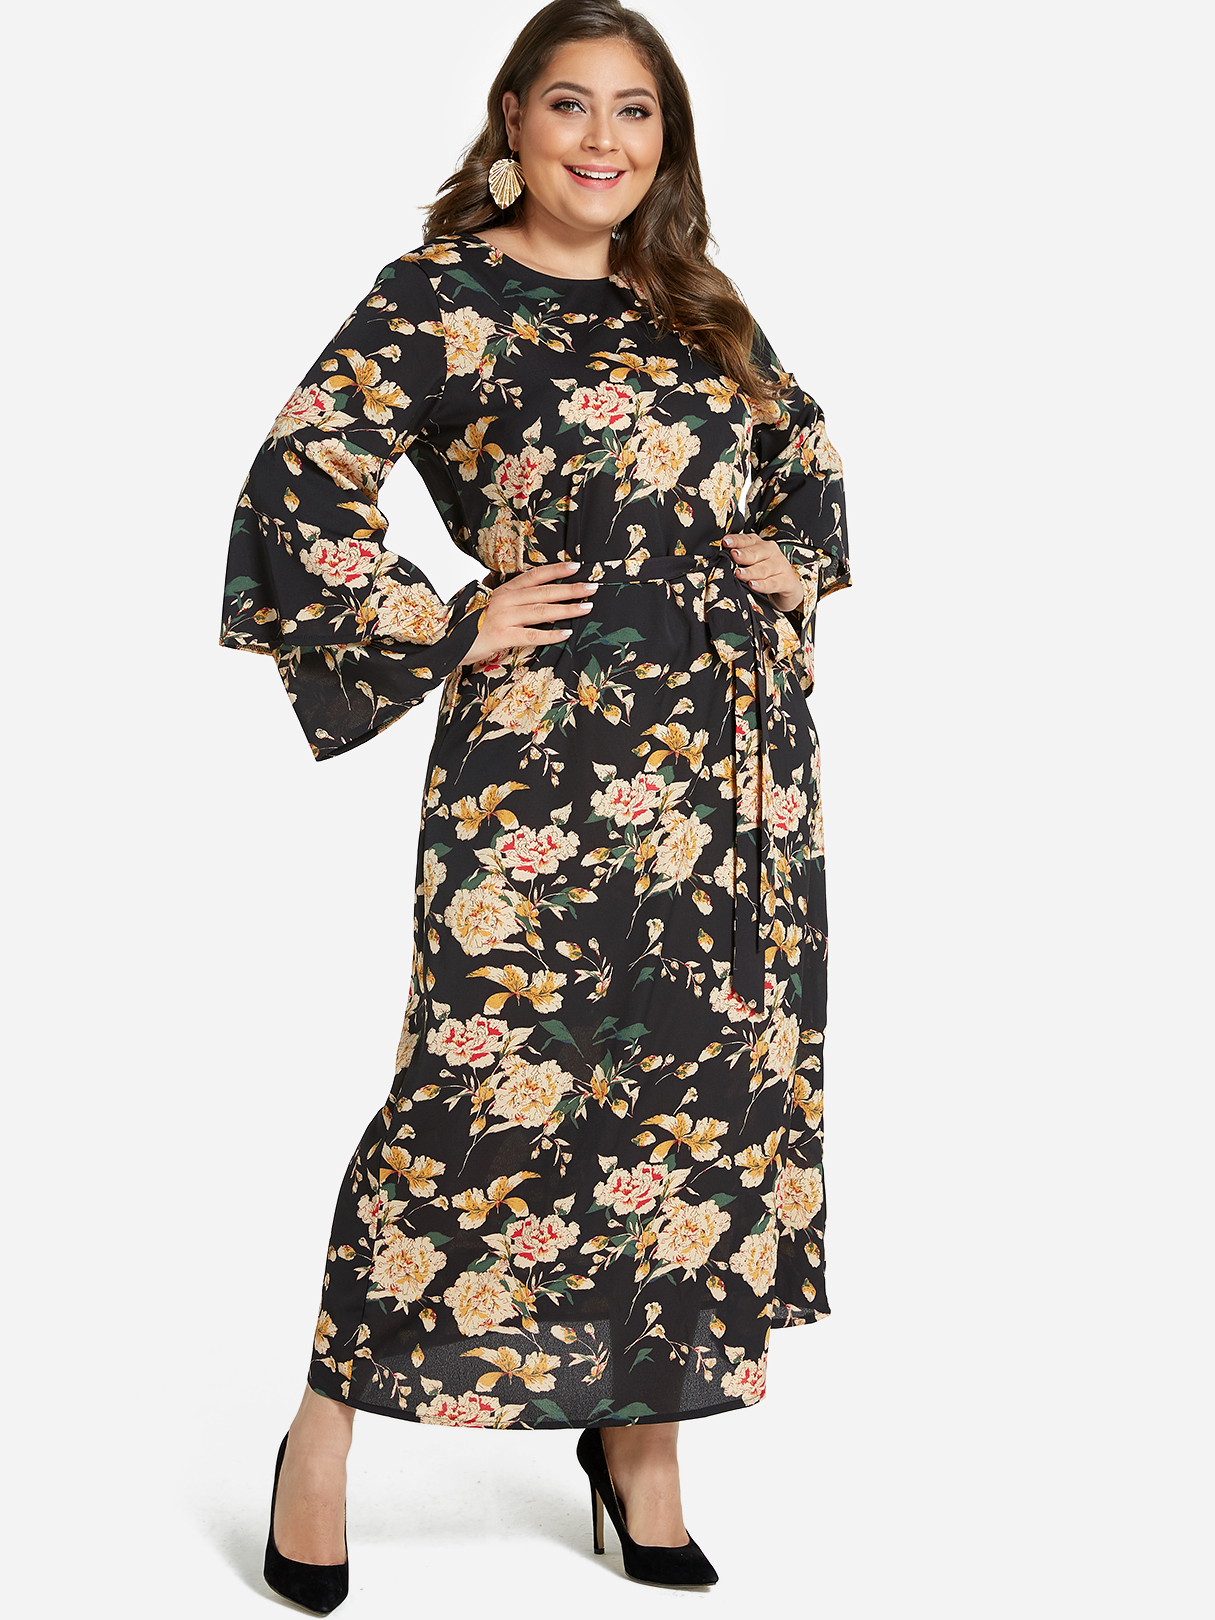 27b3625adb Plus Size Floral Print Tiered Bell Sleeves Maxi Dress, Multi - yoins.com -  imall.com